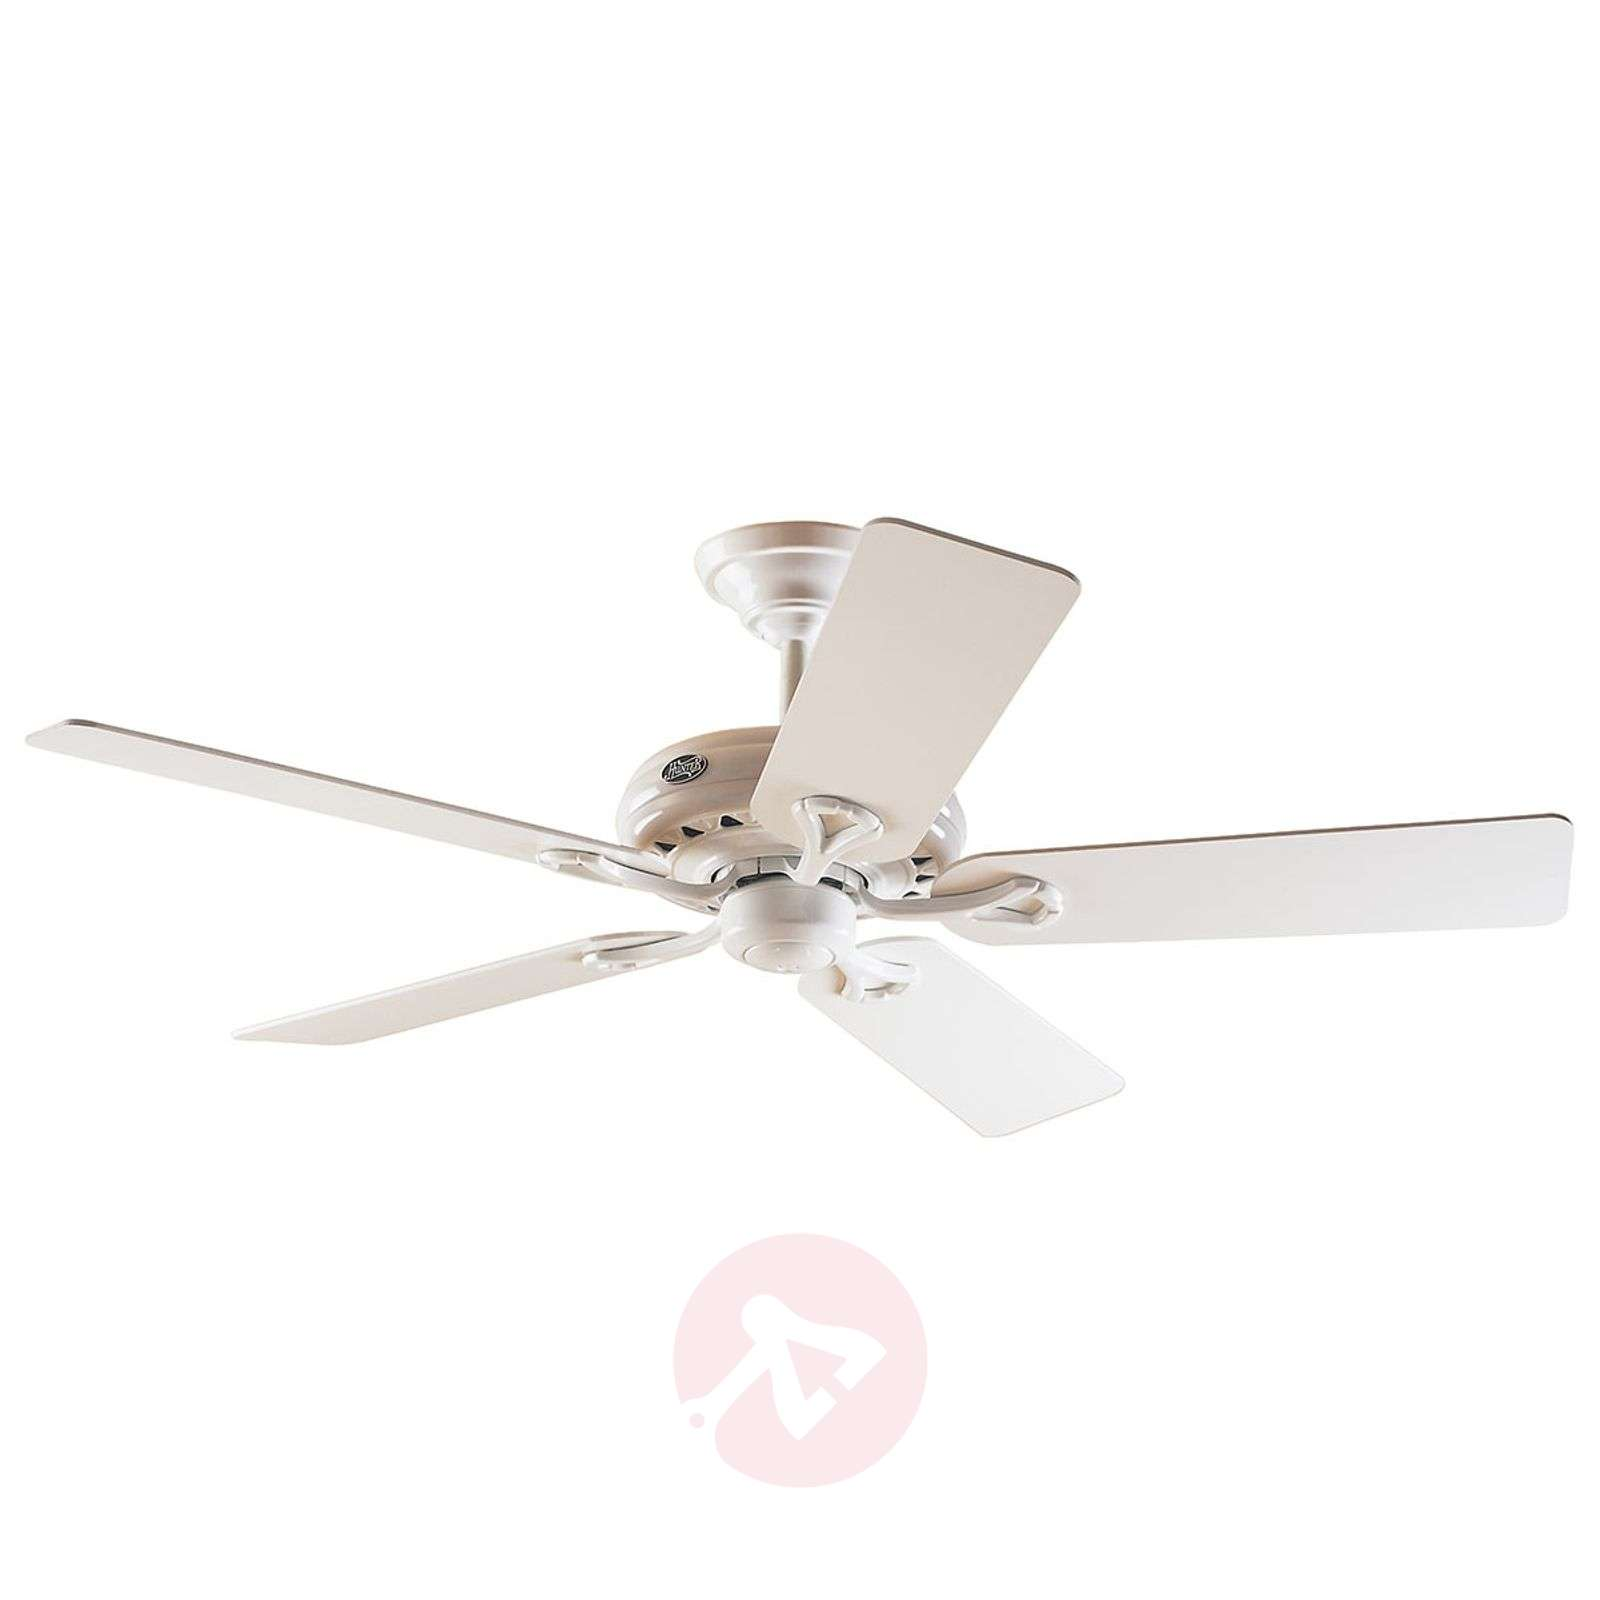 Hunter Savoy large ceiling fan reversible blades-4545012-01